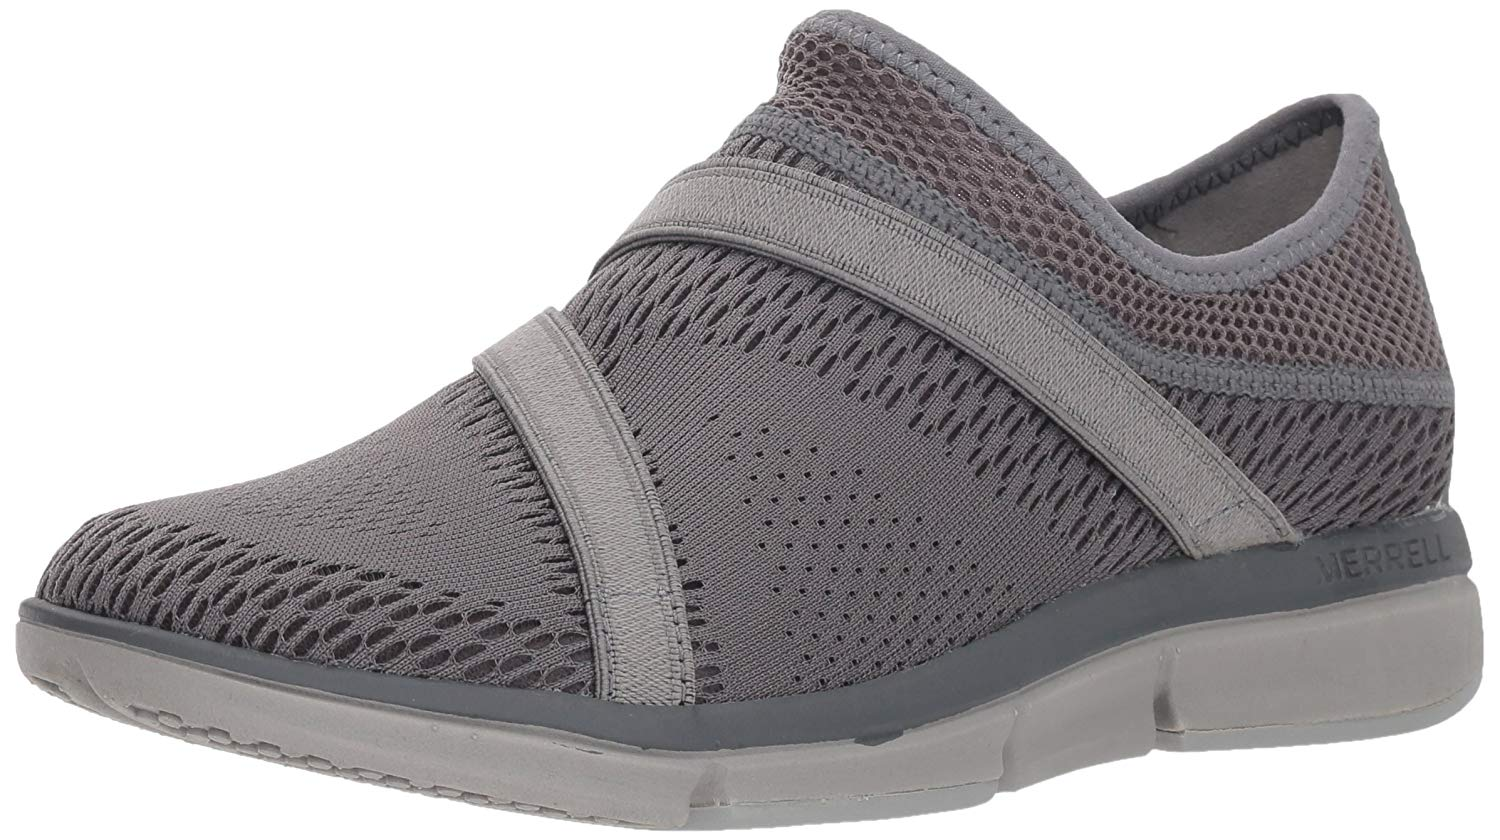 Merrell Q Form Shoes Reviews